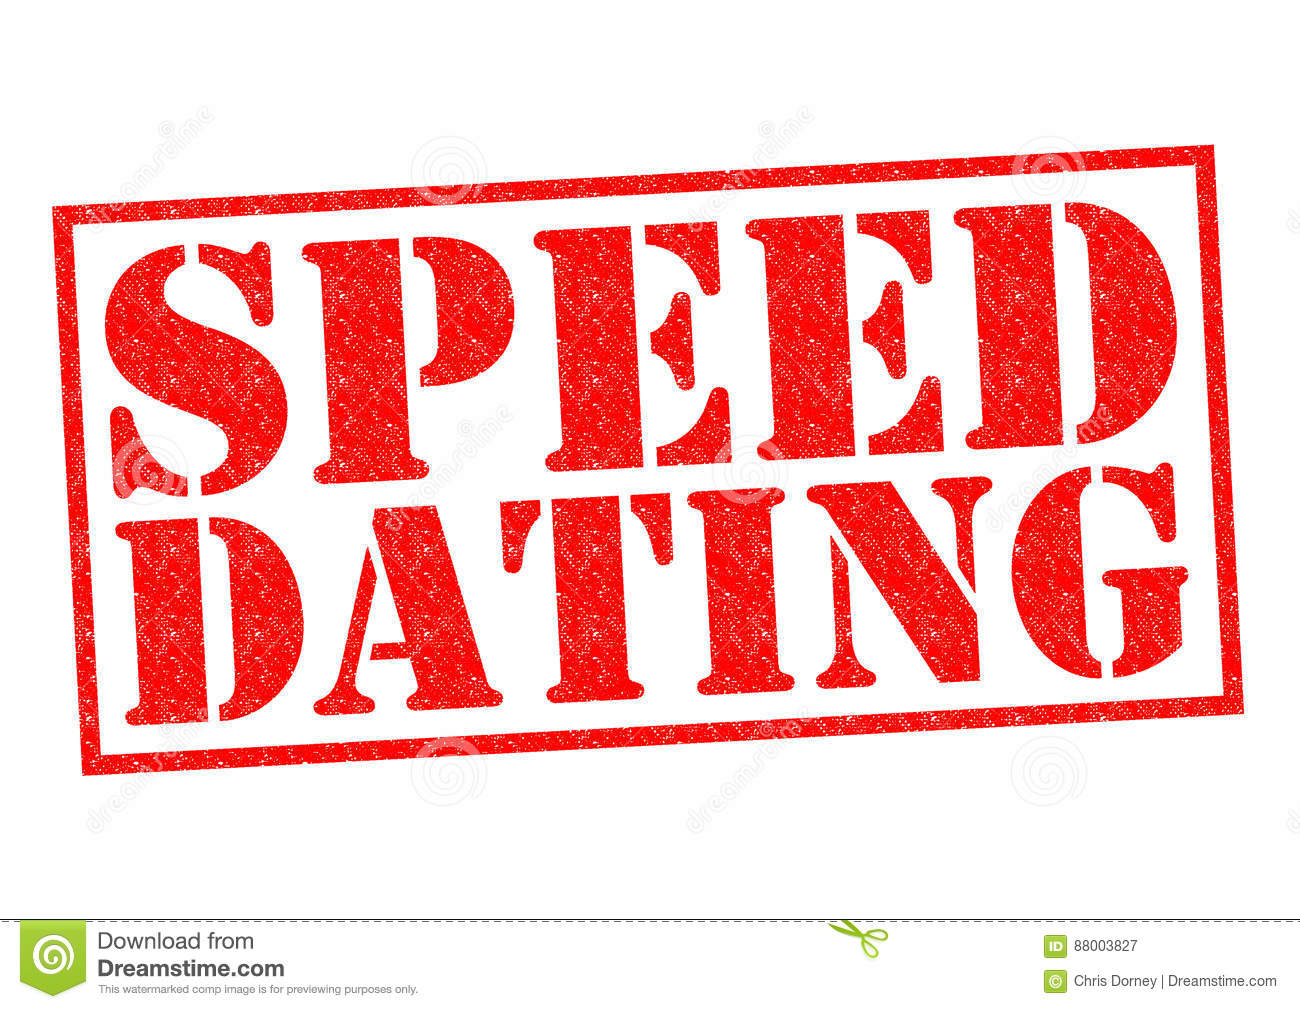 Speed dating graphics